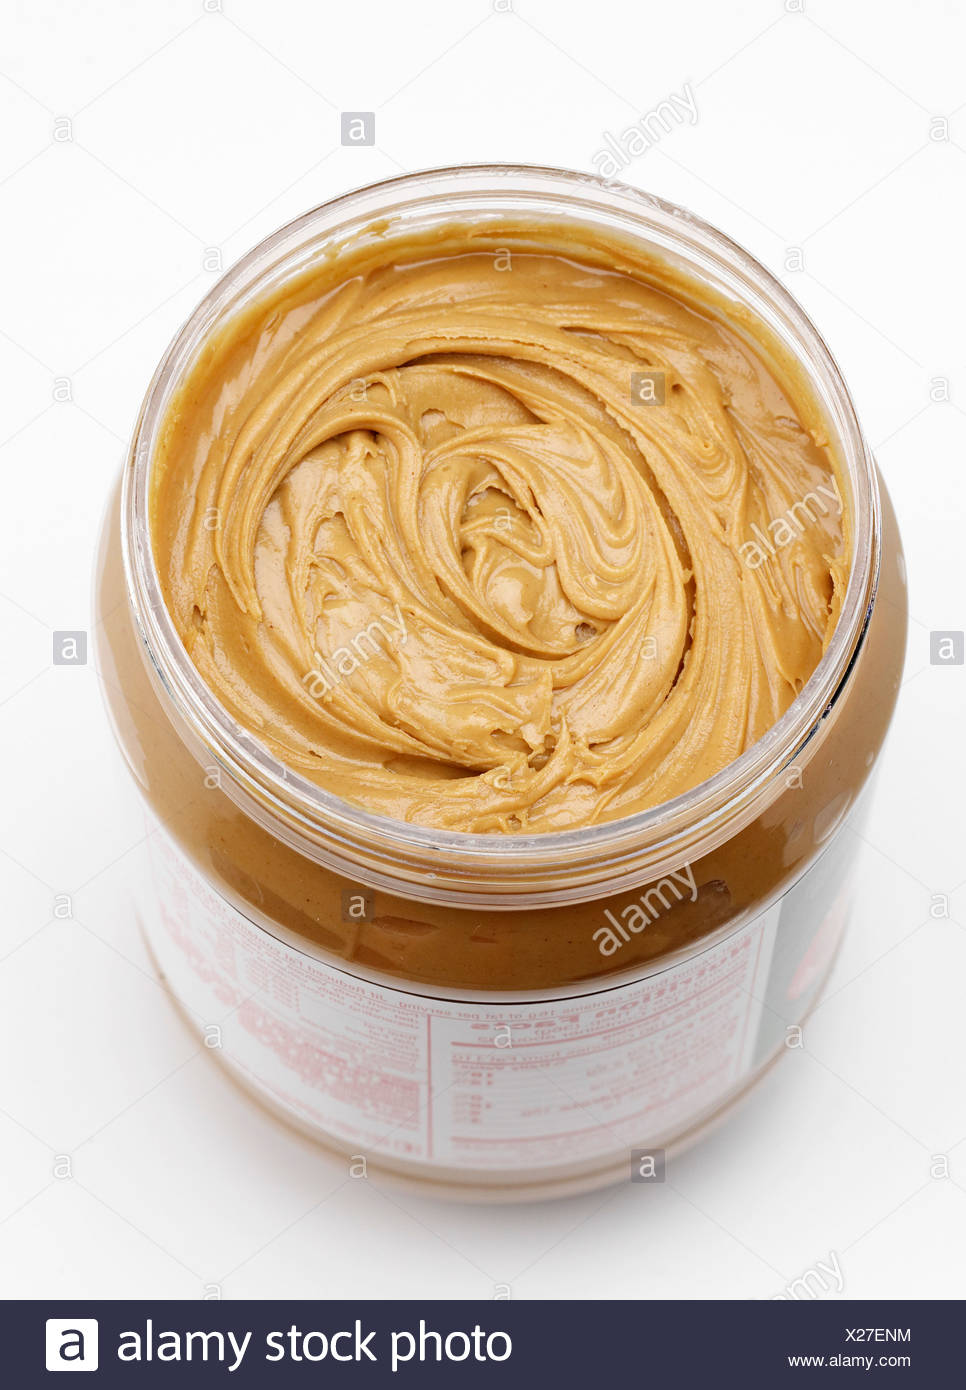 Close up of tub of peanut butter - Stock Image